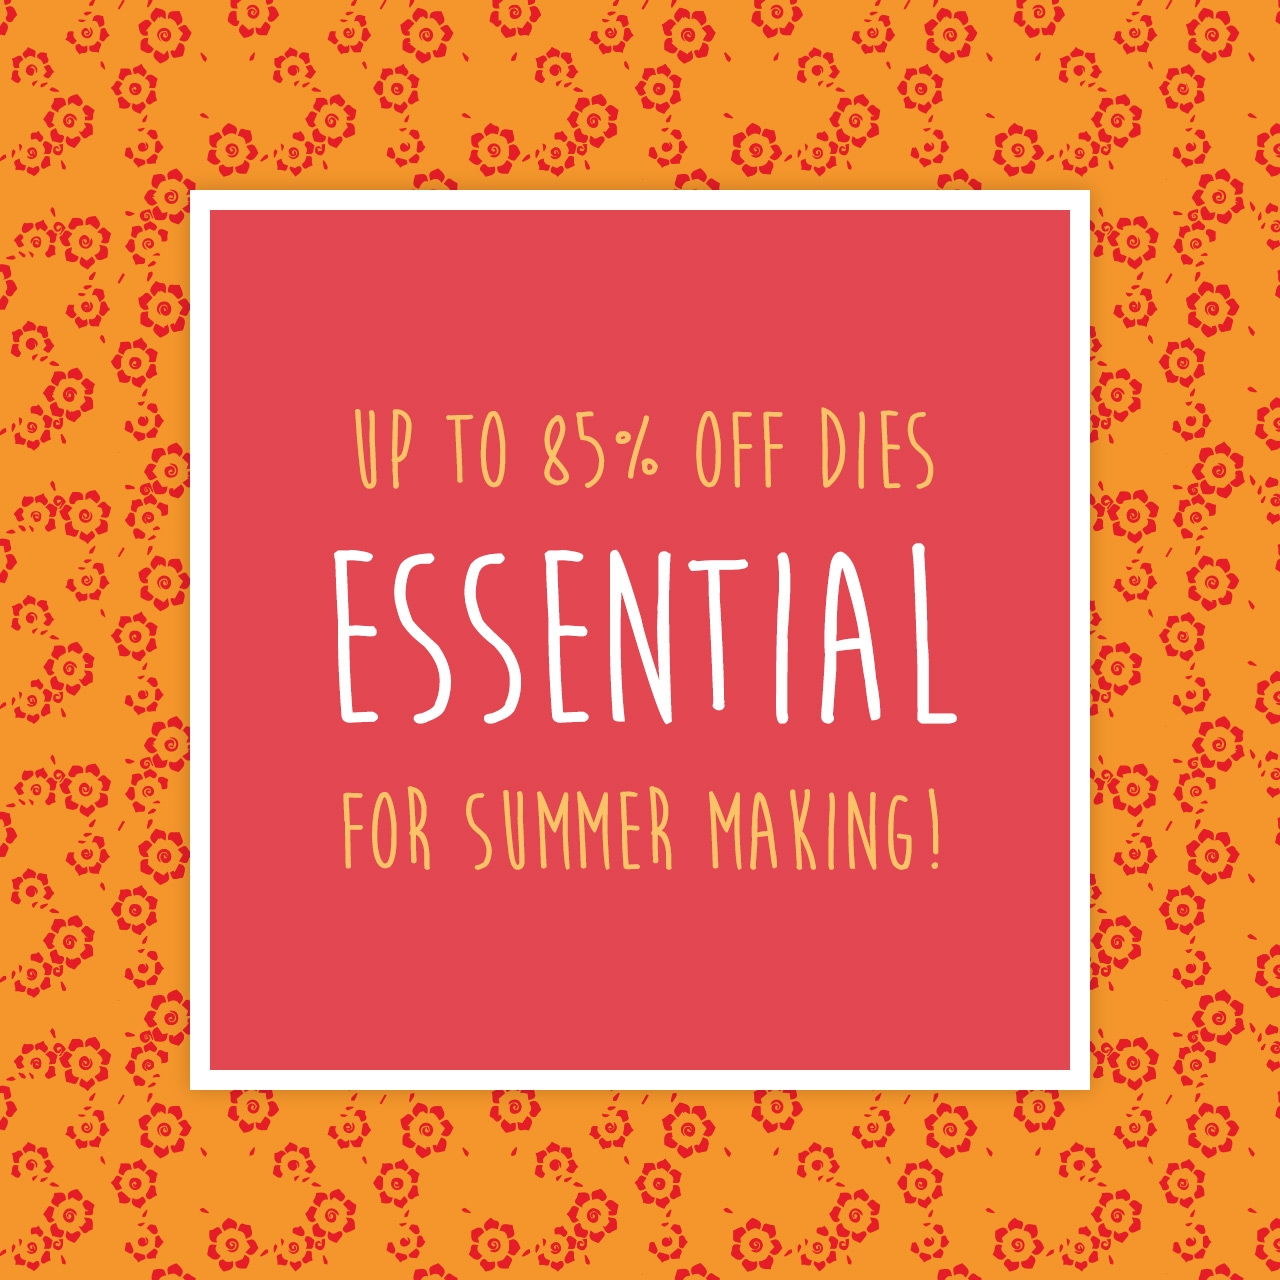 Up to 85% off summer essentials